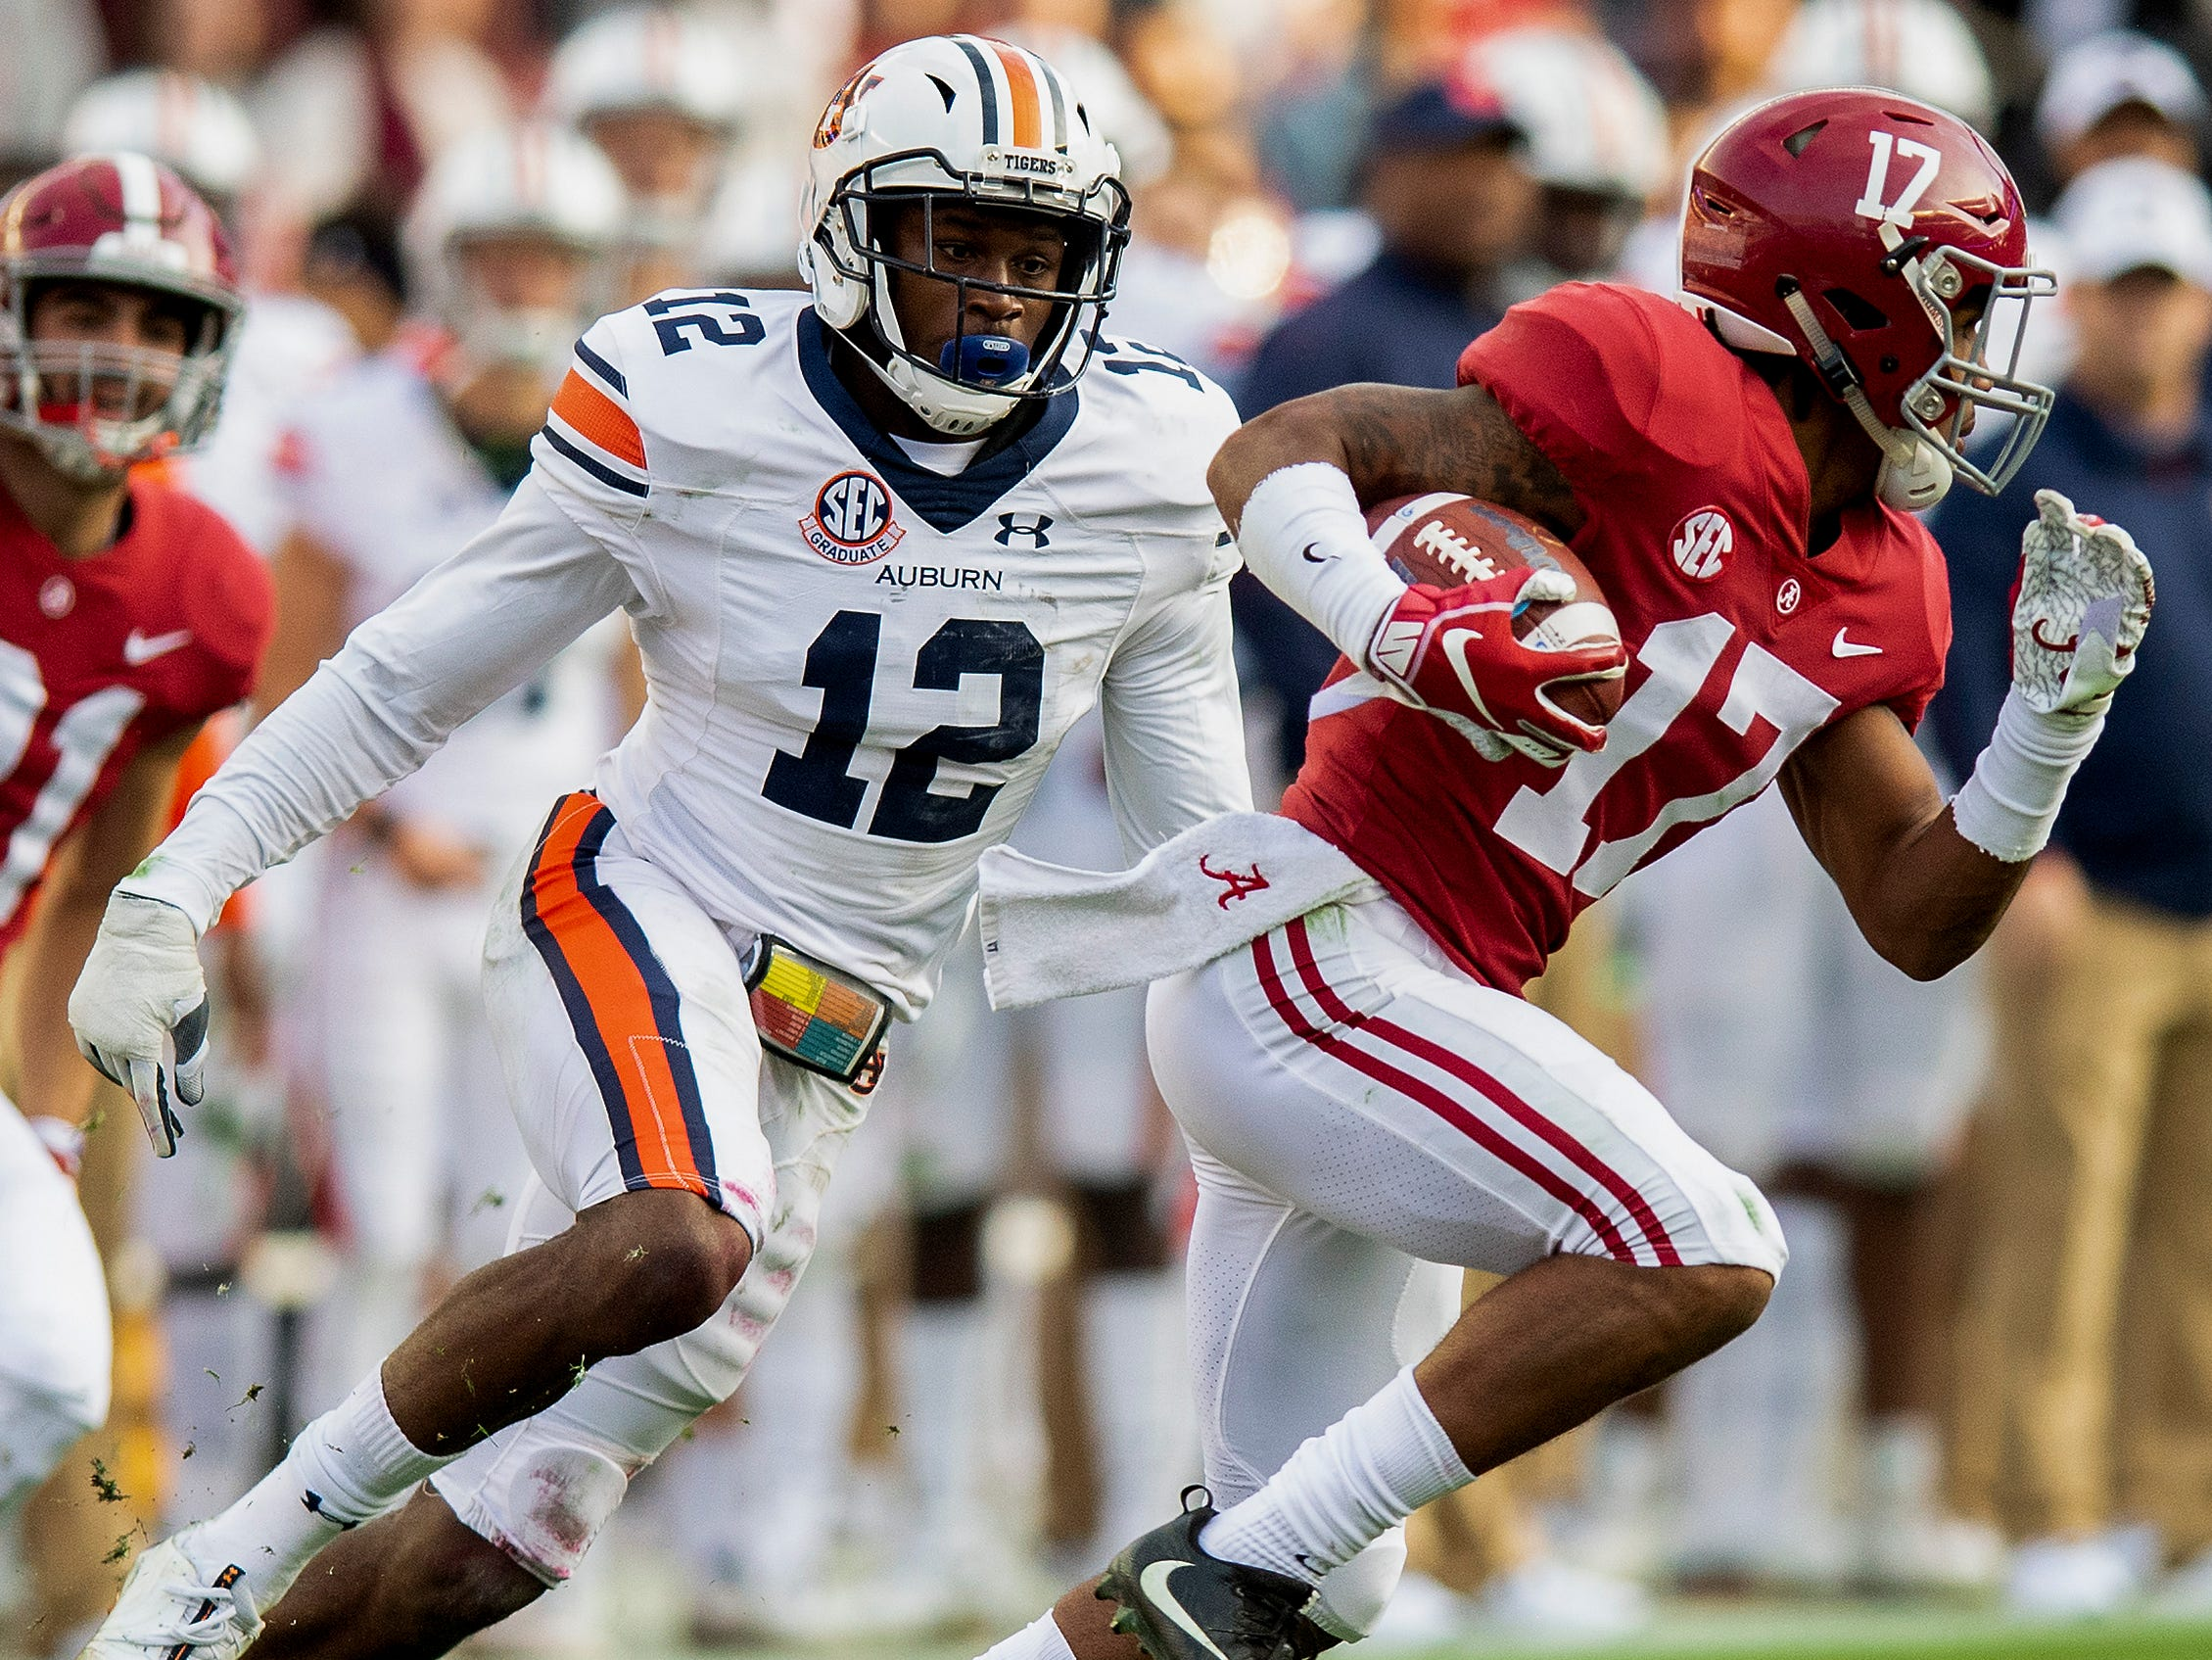 Auburn defensive back Jamel Dean (12) chases down Alabama wide receiver Jaylen Waddle (17) during the Iron Bowl at Bryant-Denny Stadium in Tuscaloosa, Ala., on Saturday November 24, 2018.